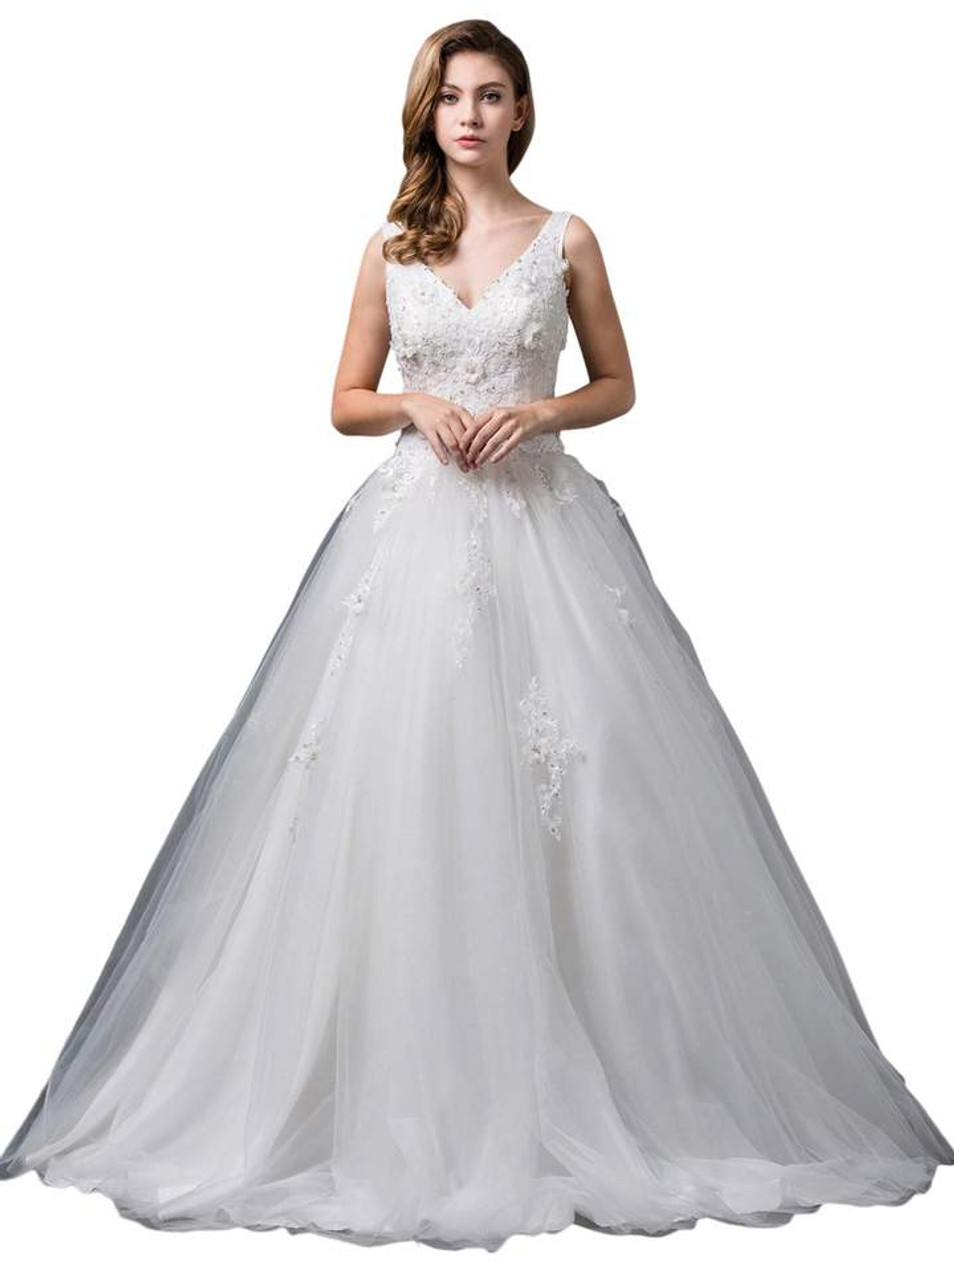 Dancing Queen 0079 Sleeveless Lace Plunging V-neck Ballgown